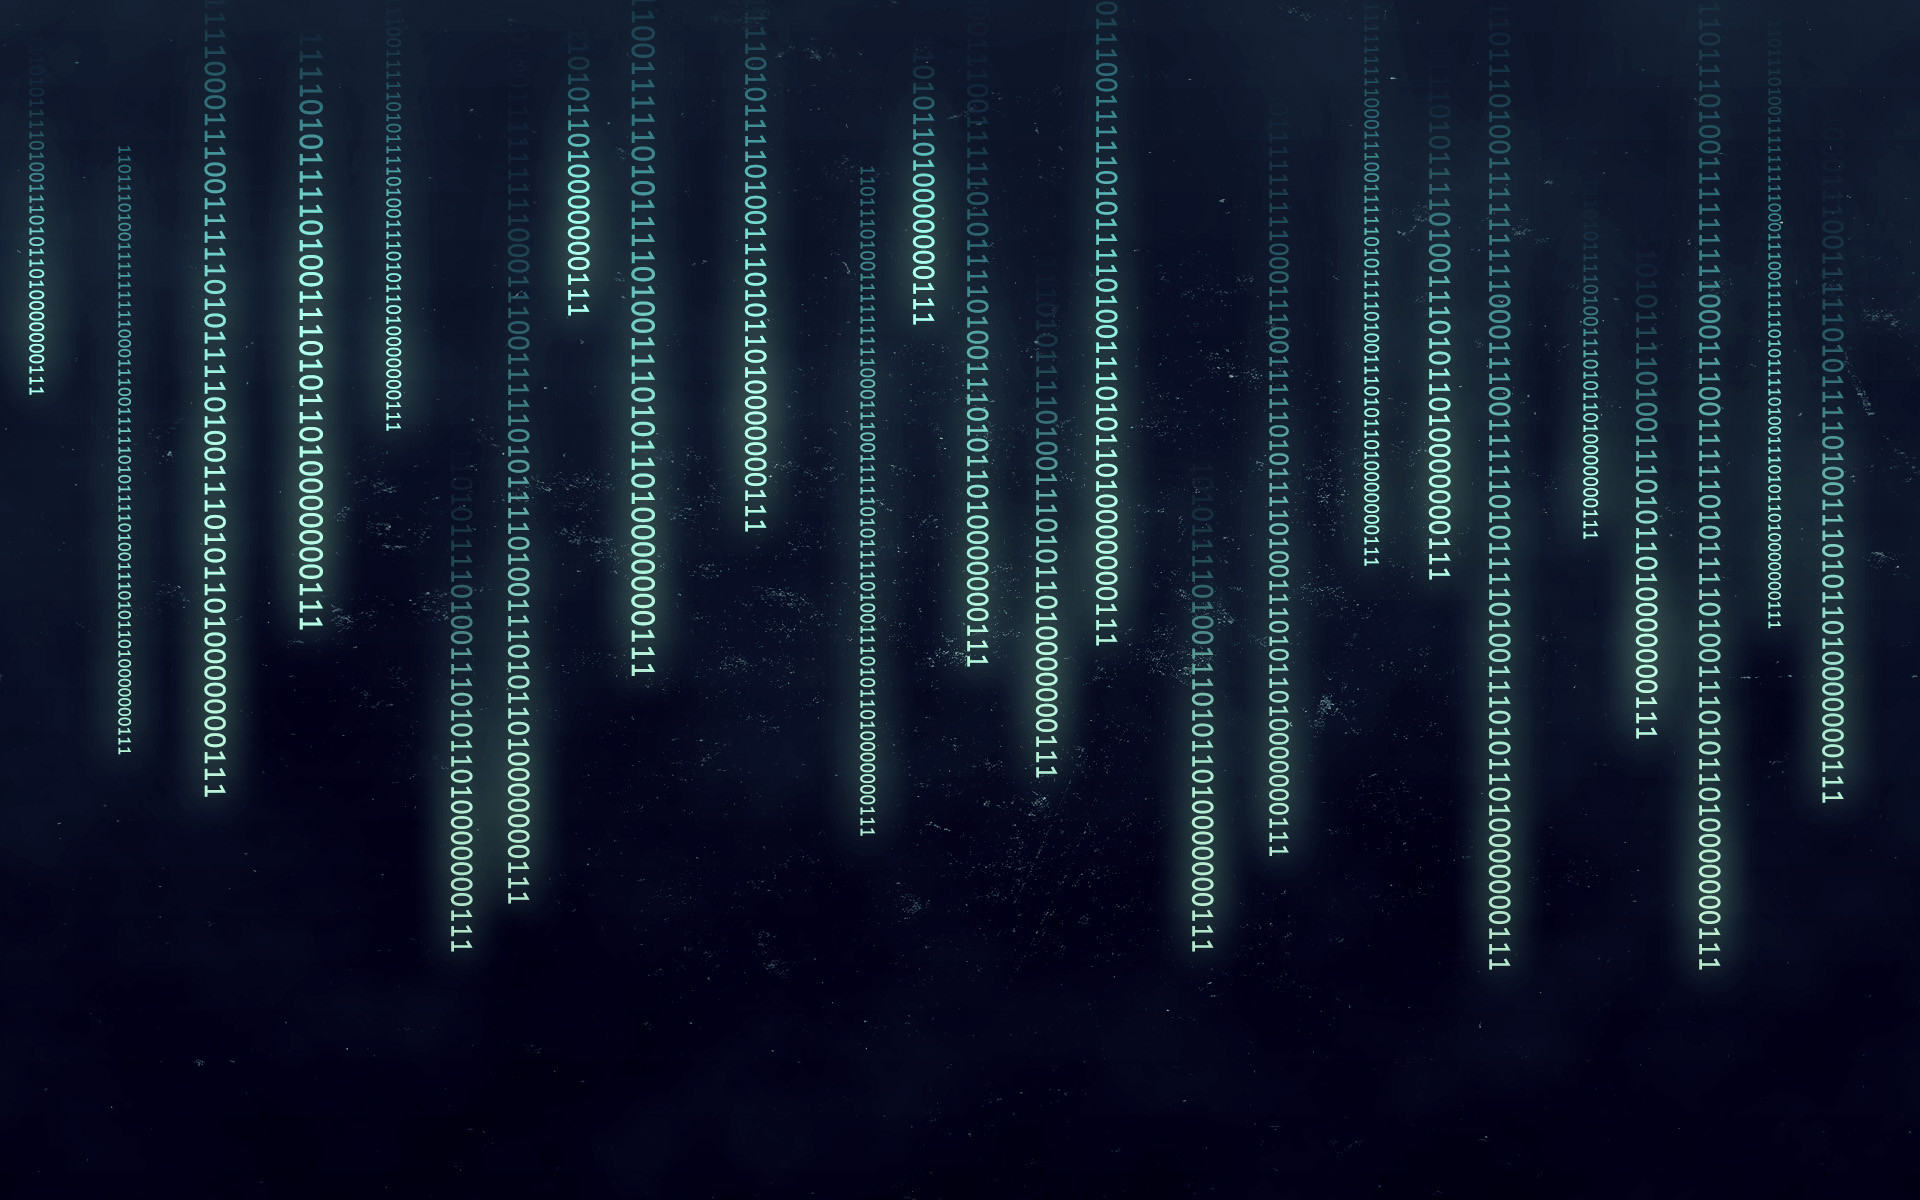 73 Binary Code Wallpapers images in the best available resolution.